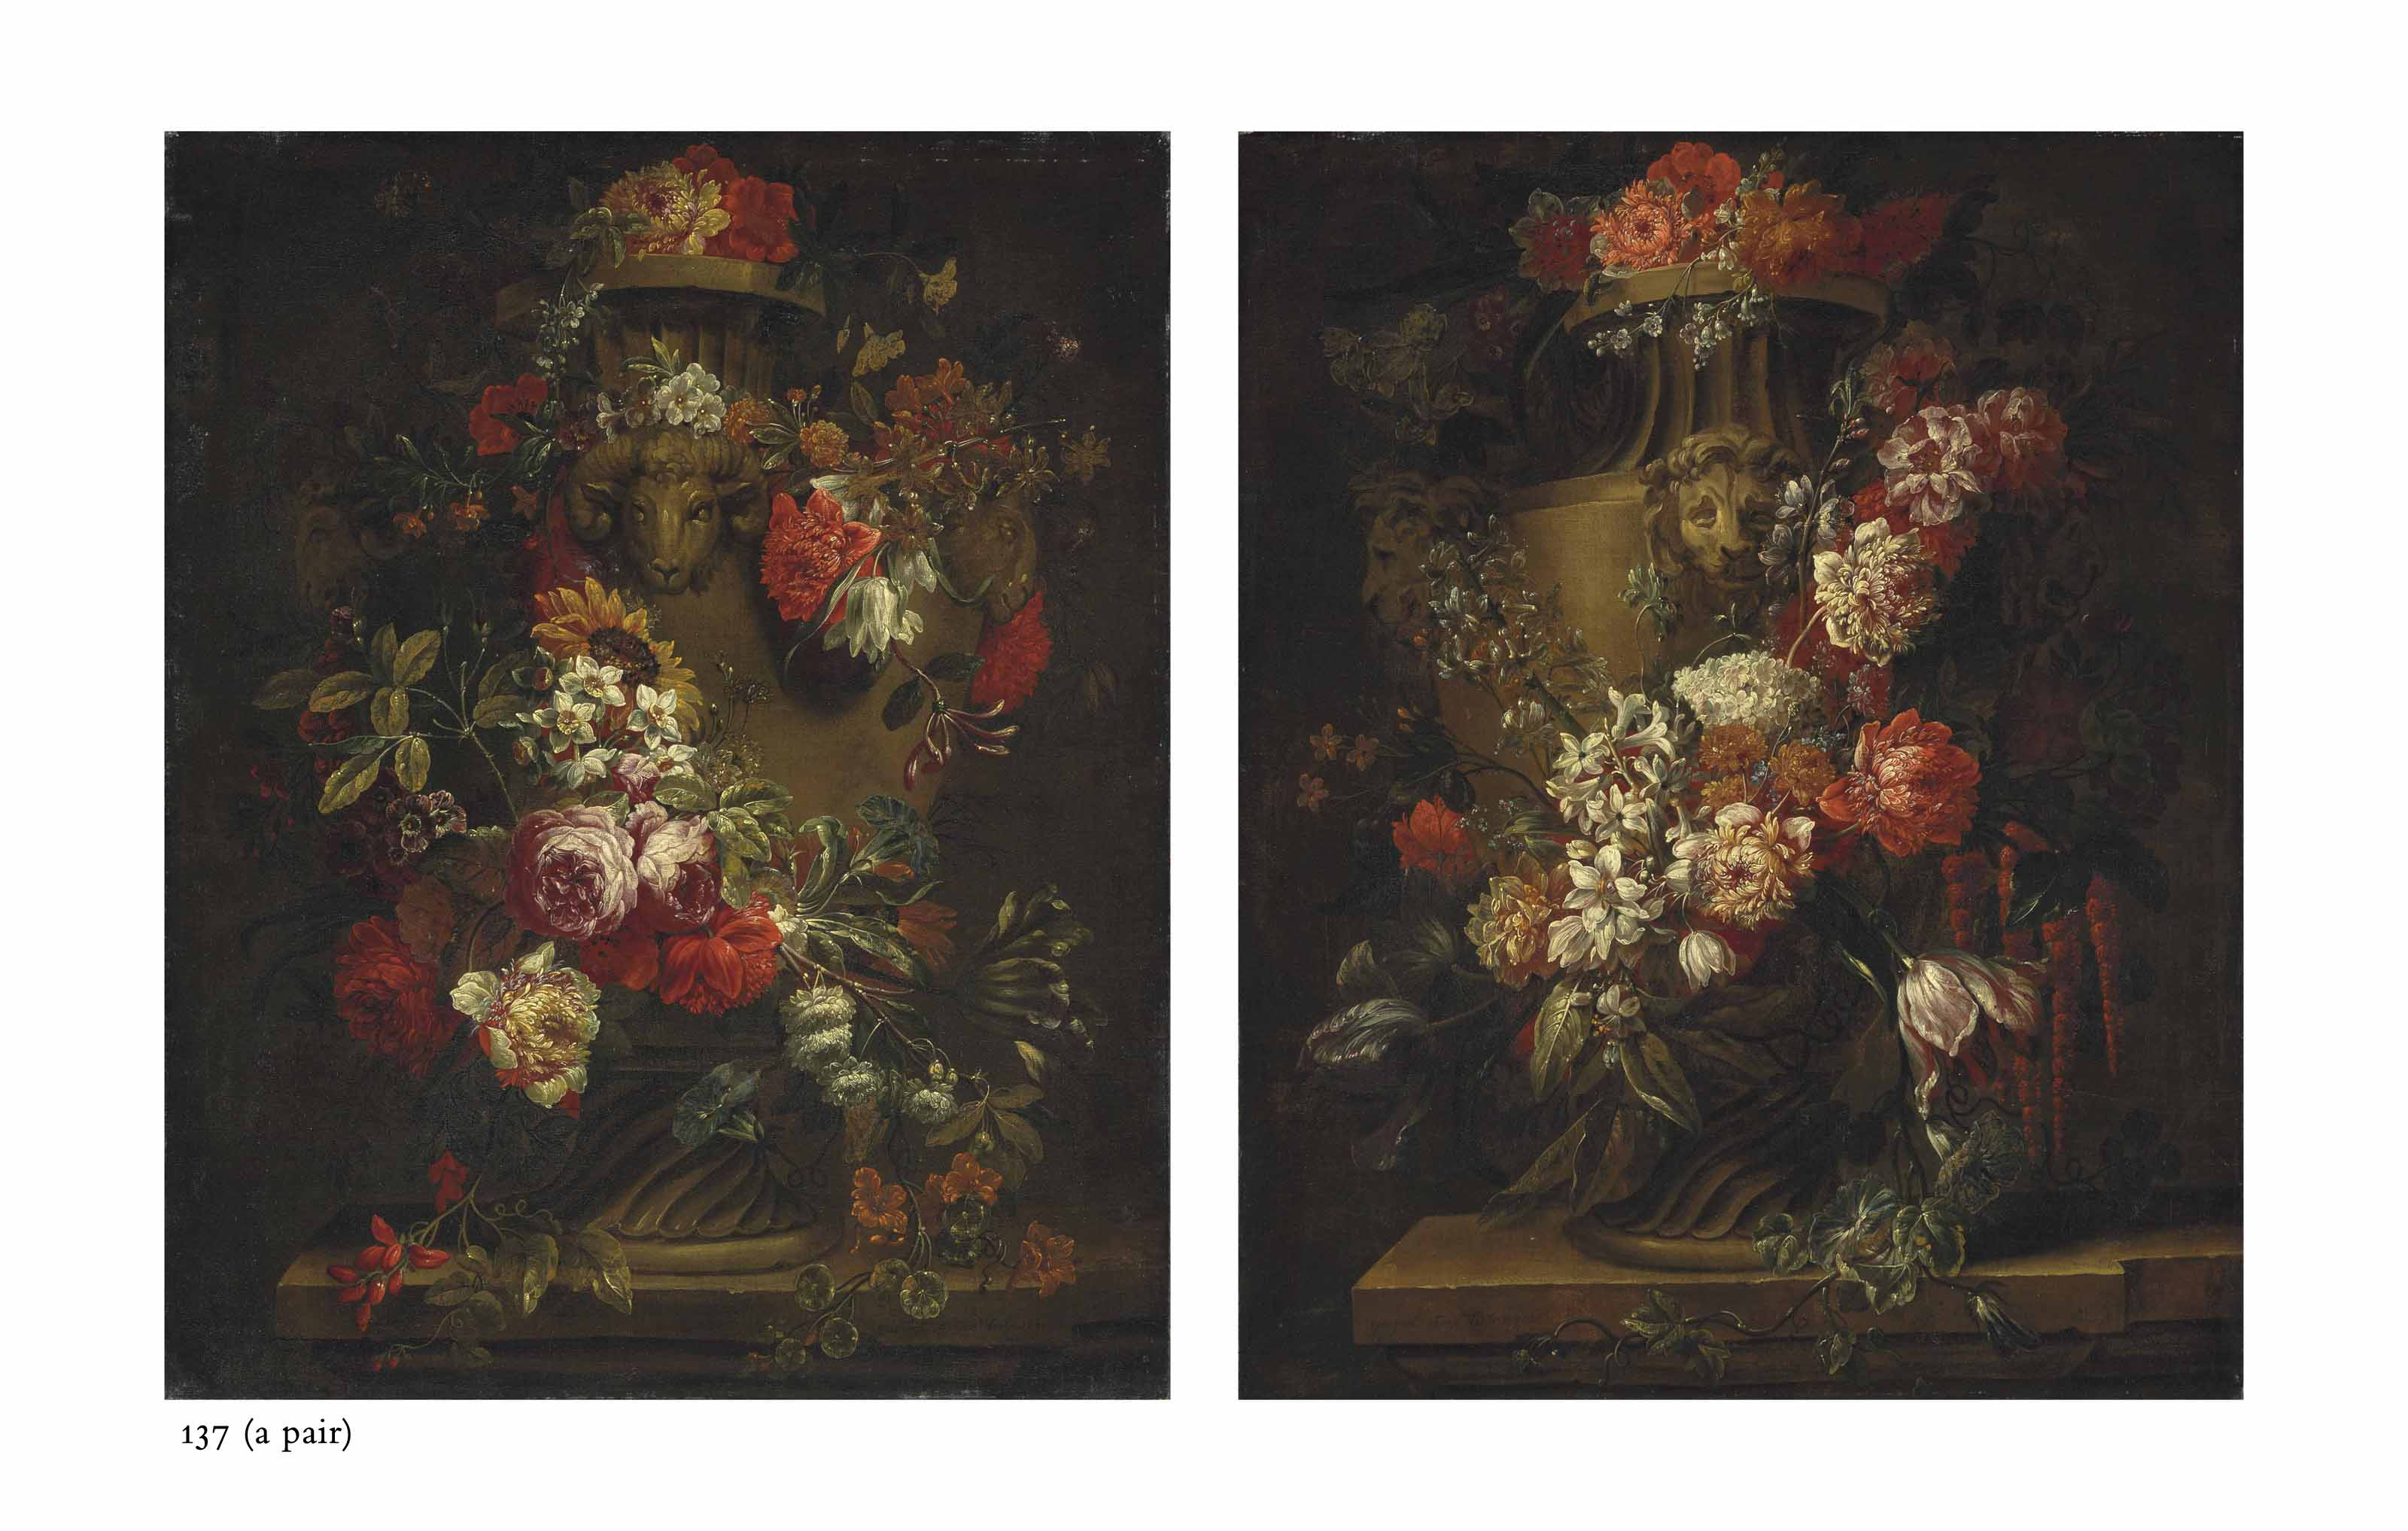 A garland of roses, peonies, daffodils, tulips, morning glory and other flowers draped around an urn with ram heads, on a stone ledge; and A garland of peonies, roses, snowballs, tulips, hyacinths and other flowers draped around an urn with lion heads, on a stone ledge